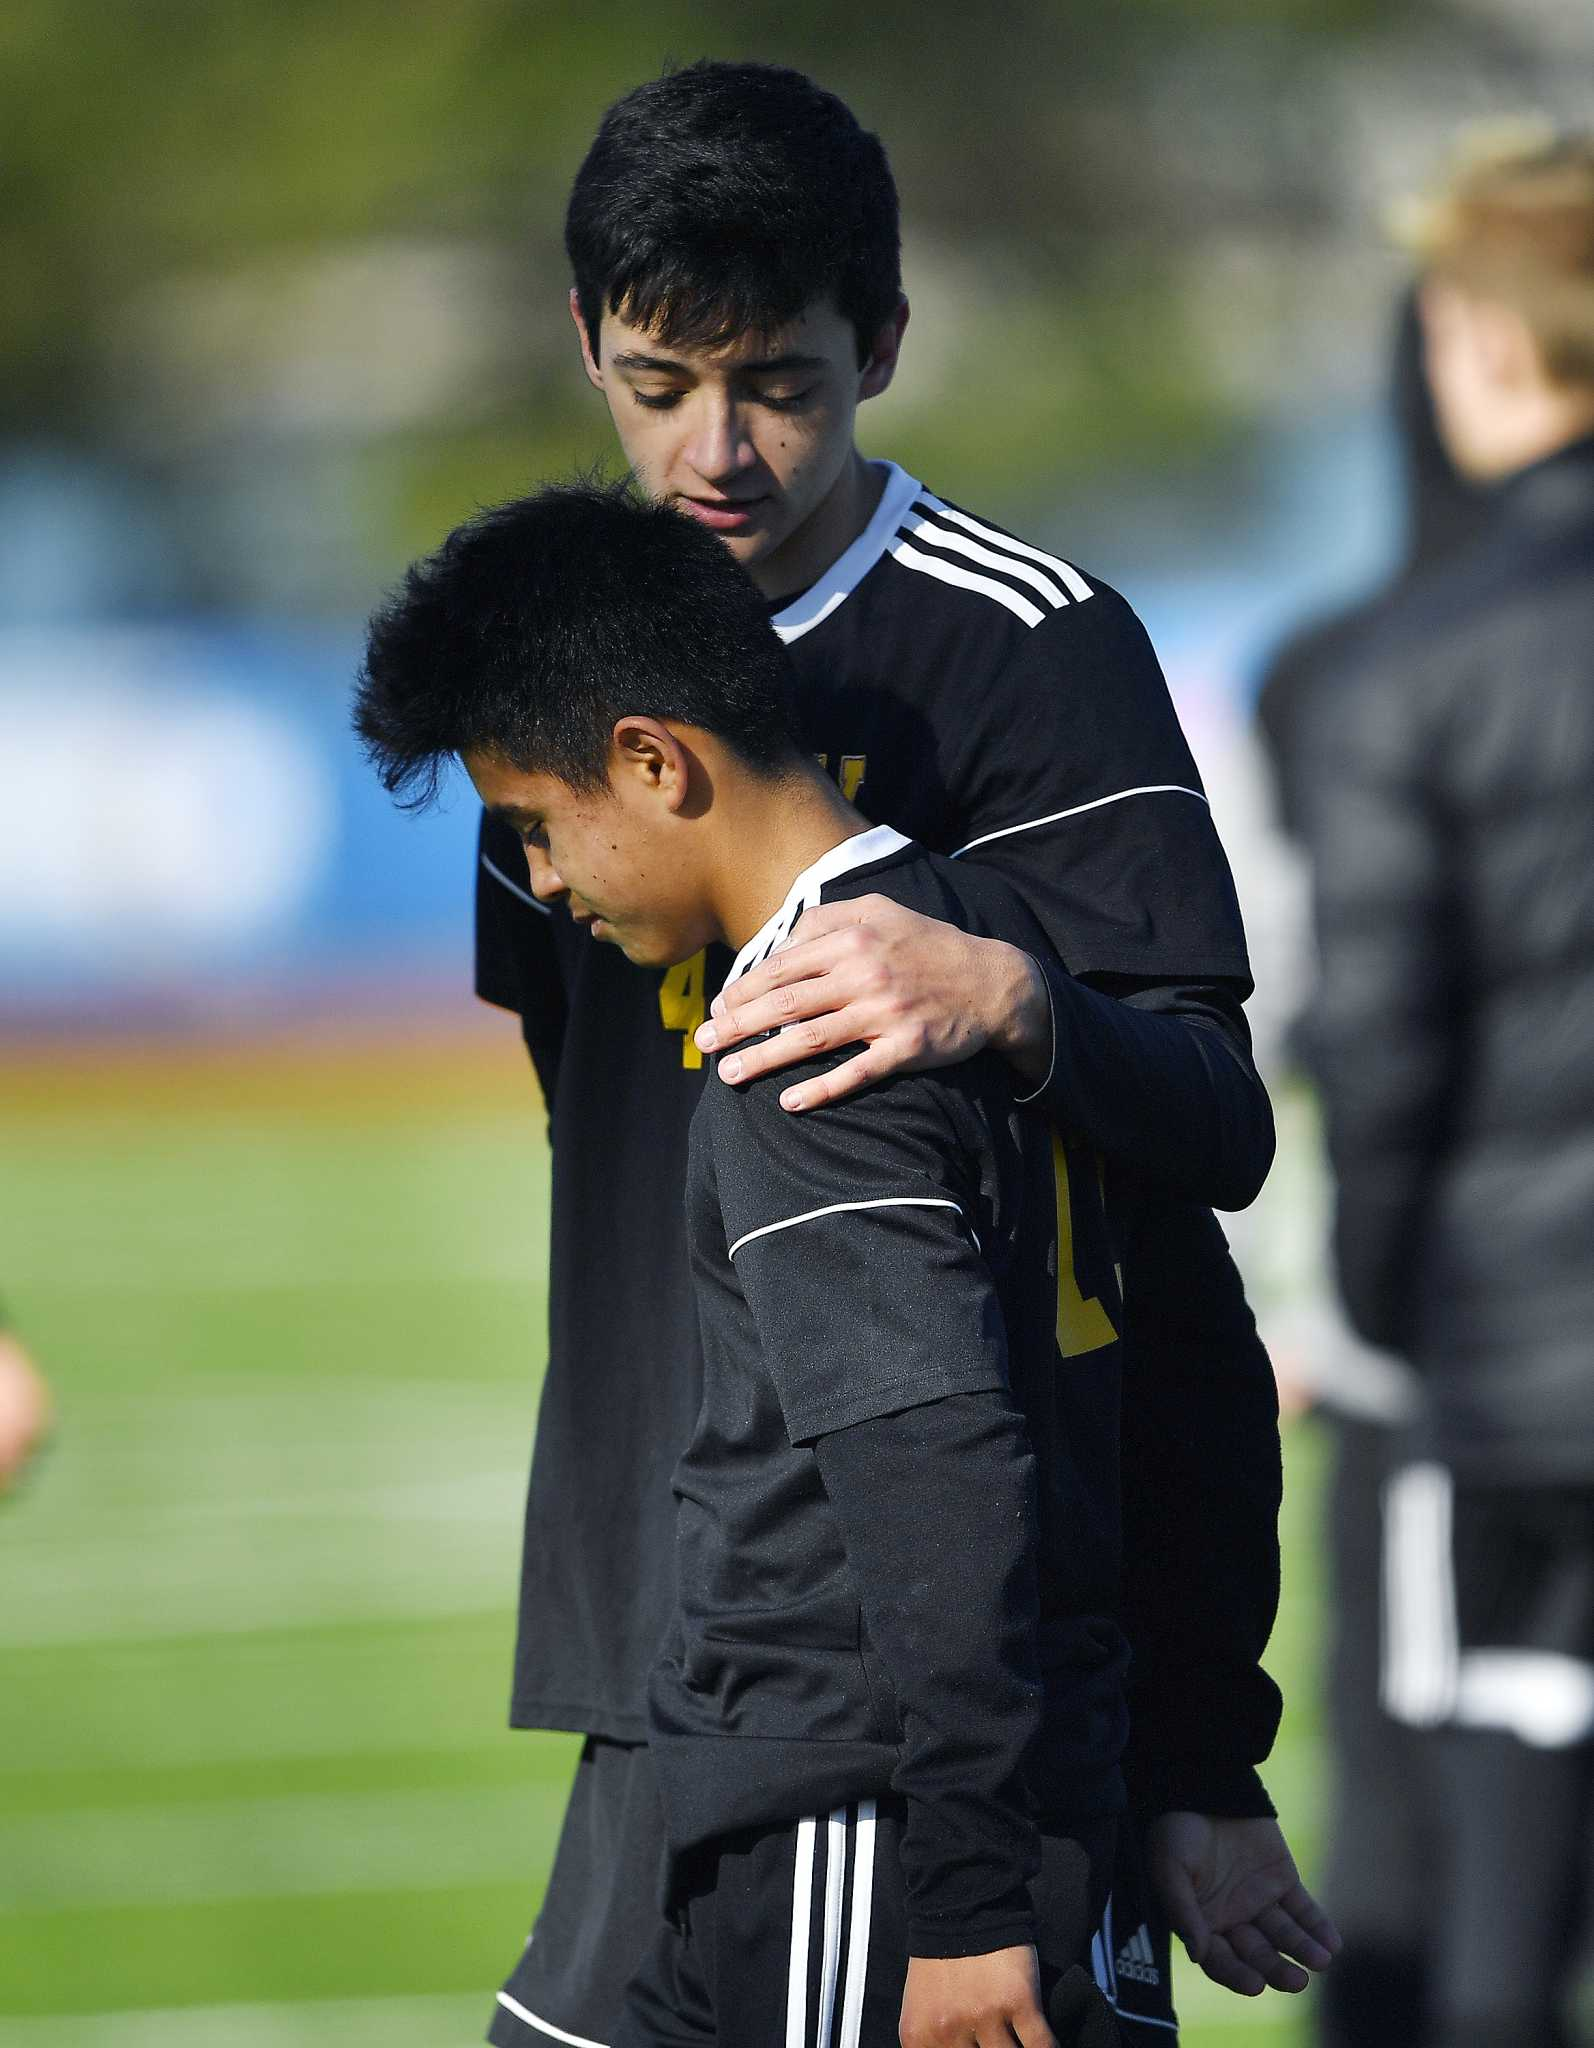 Voorheesville boys' soccer shut out in Class C state semifinal